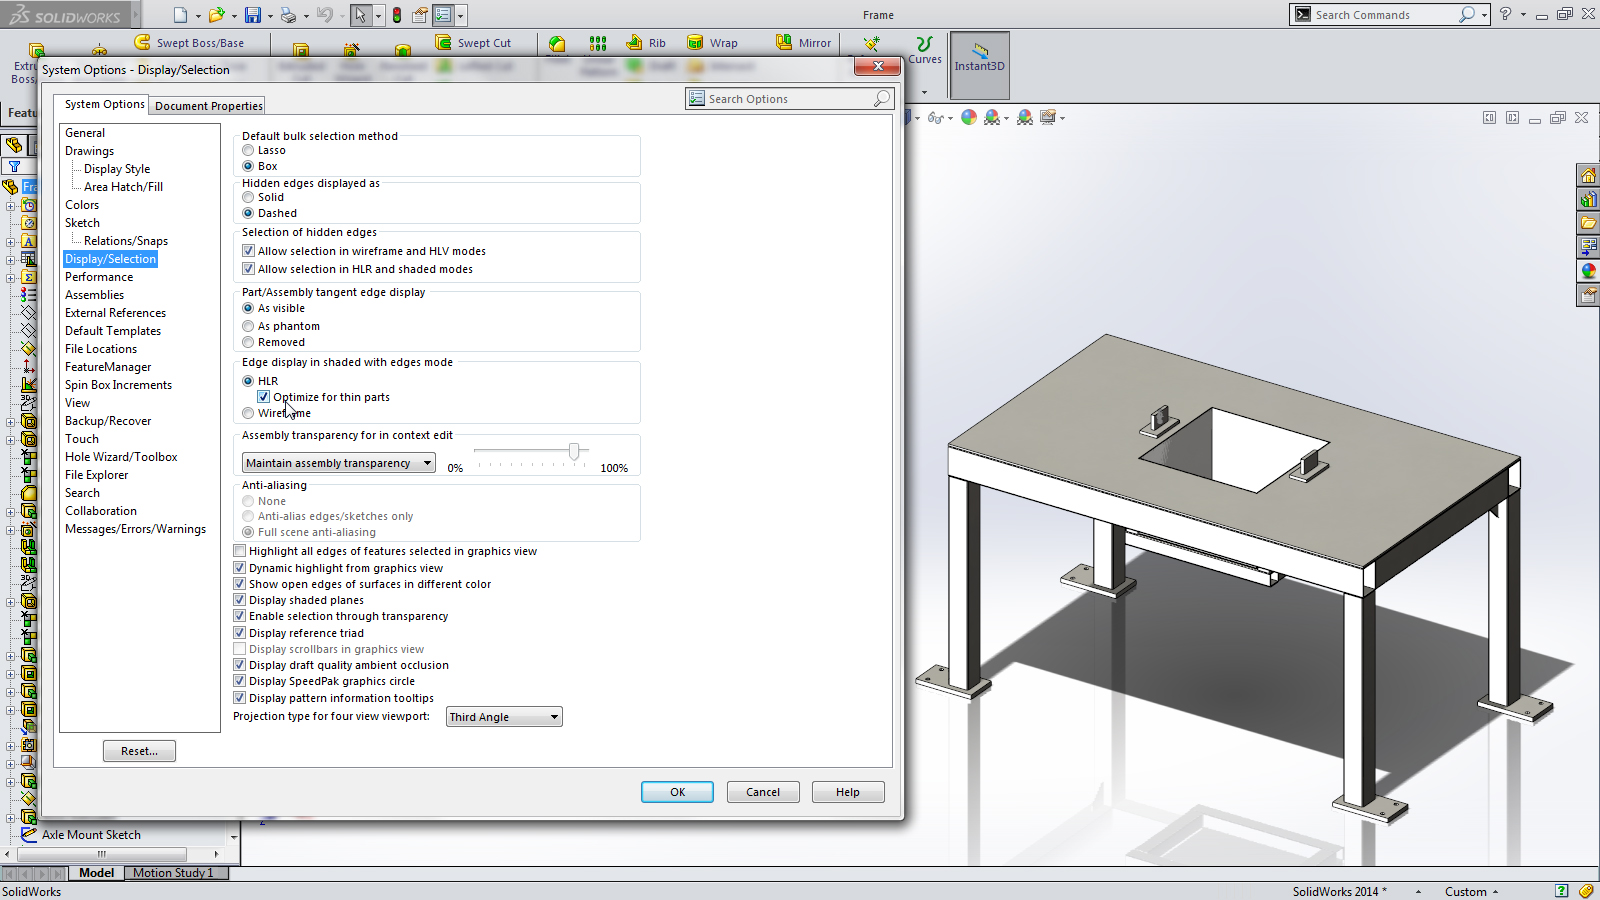 SolidWorks 2014 Sneak Peek: No Edge Bleed-Through for Thin Parts